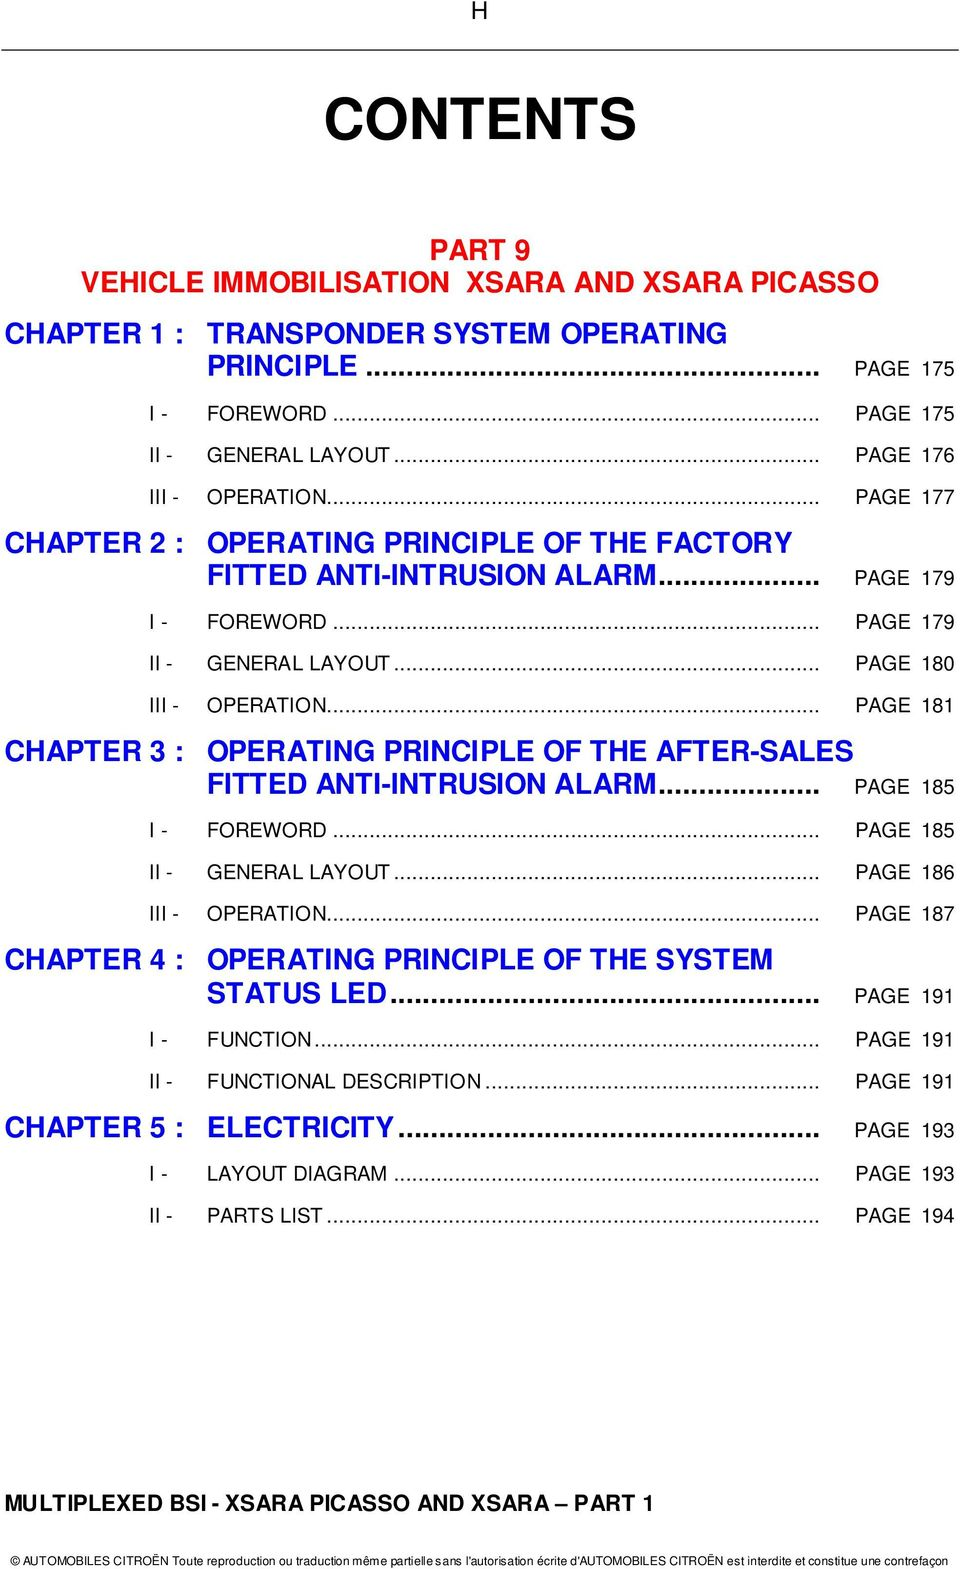 Multiplexed Bsi Operating Principle For The Xsara Picasso And Citroen C8 Abs Wiring Diagram Page 181 Chapter 3 Of After Sales Fitted Anti